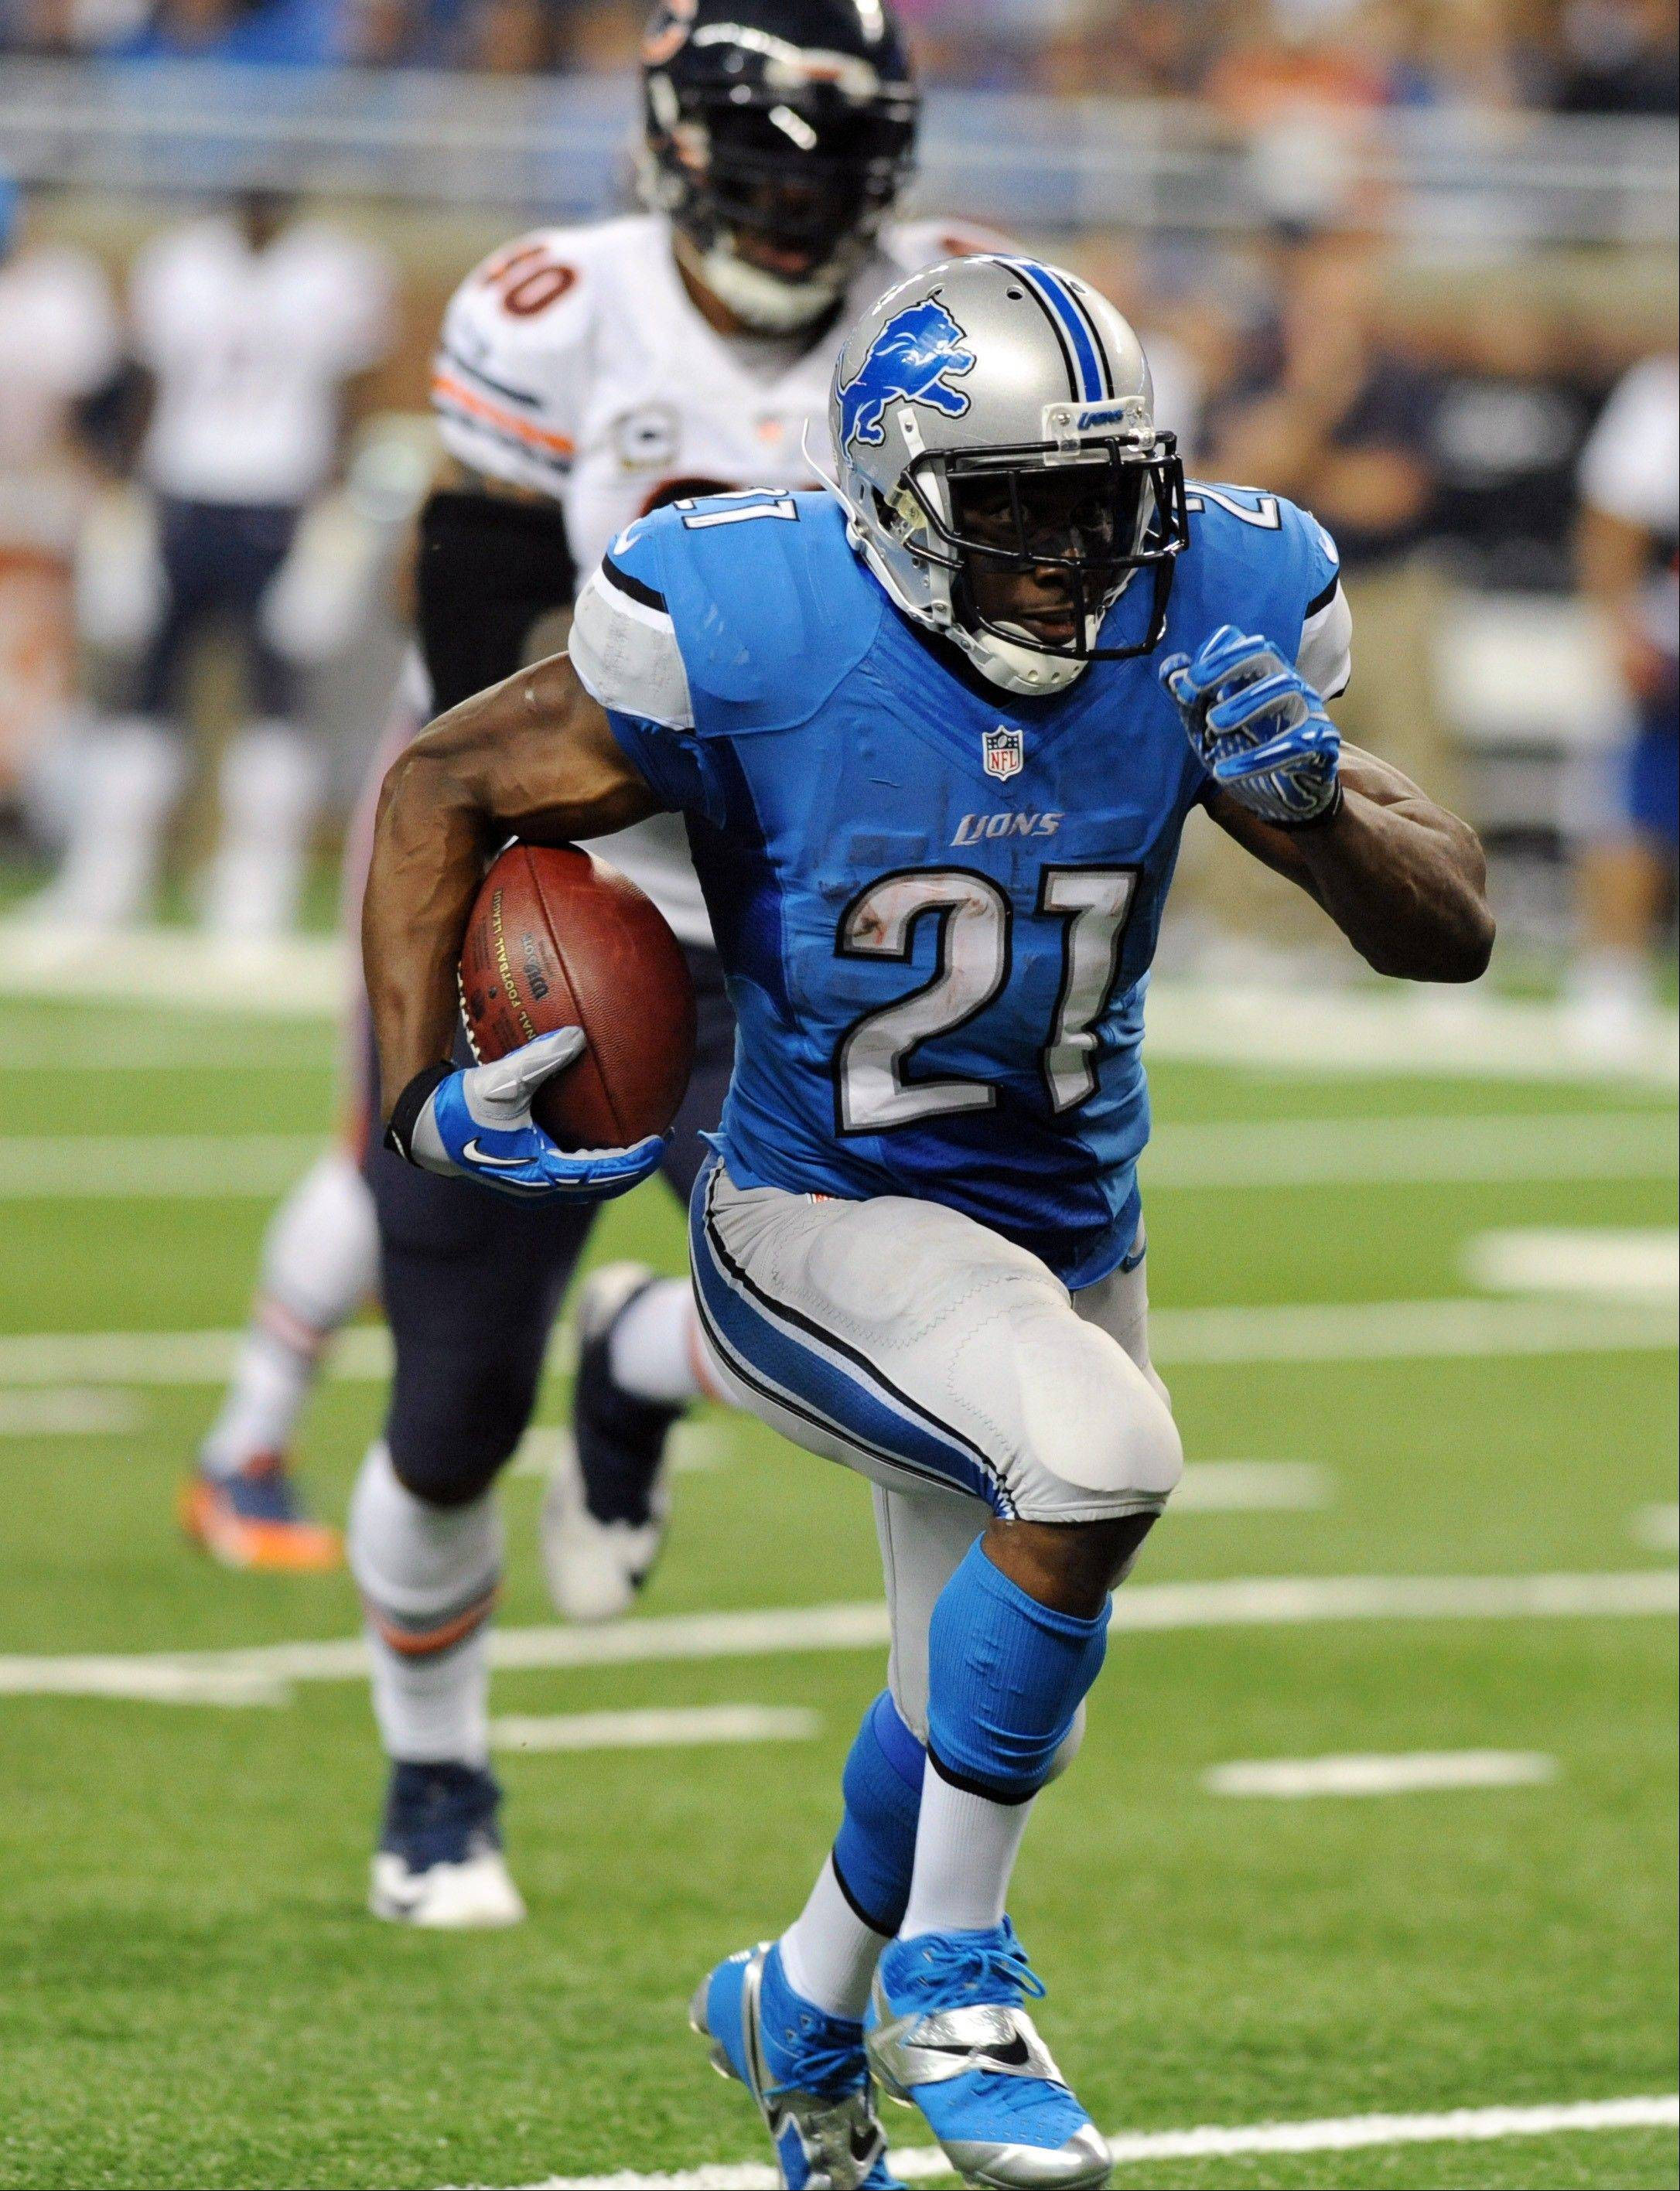 Lions running back Reggie Bush rushed for 103 yards on 9 carries in the first half of Sunday�s 40-32 victory over the Bear. Detroit lead 30-13 at halftime.